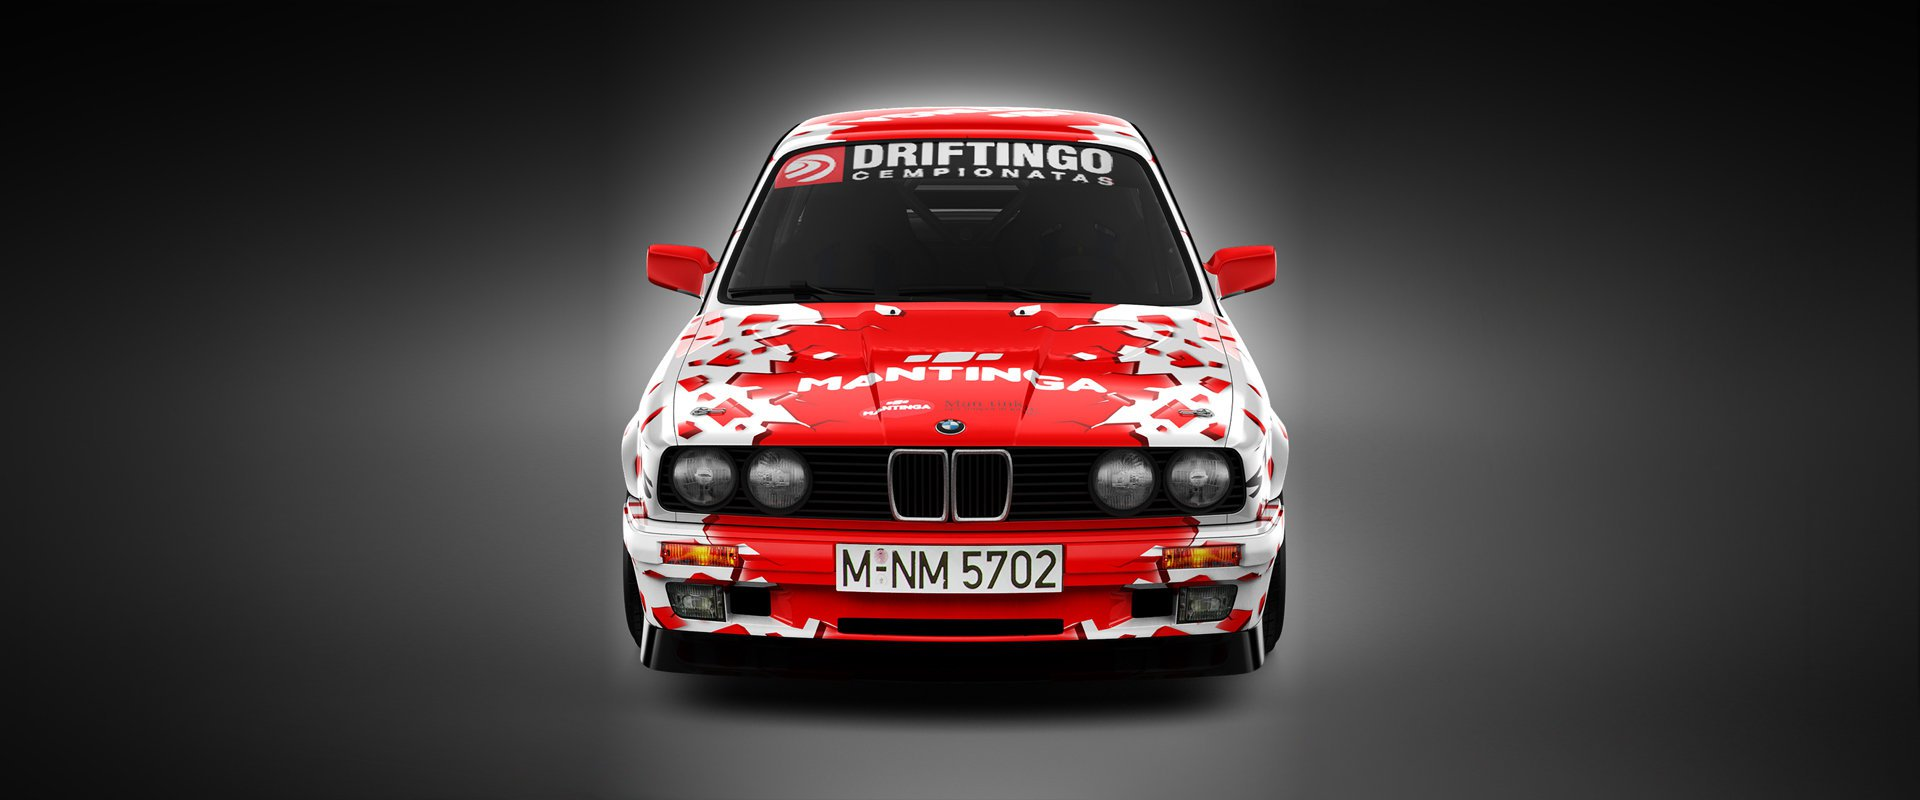 Mantas Drift #4